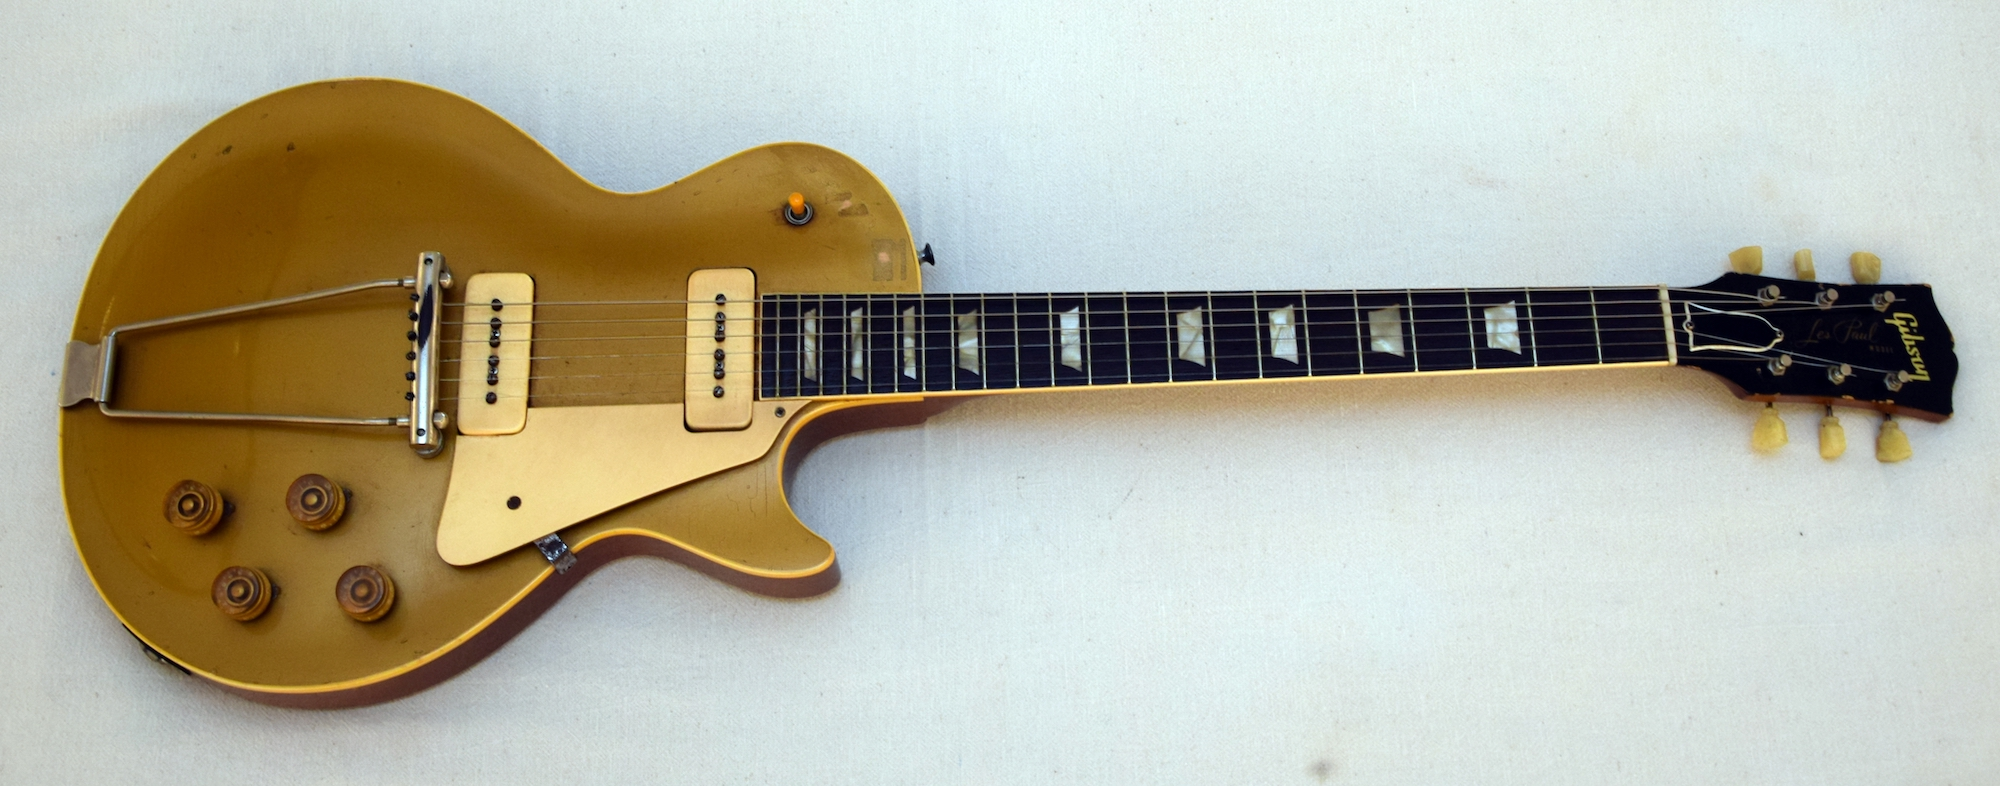 Buddy Hollys Les Paul A Guitar That Changed The Course Of Music